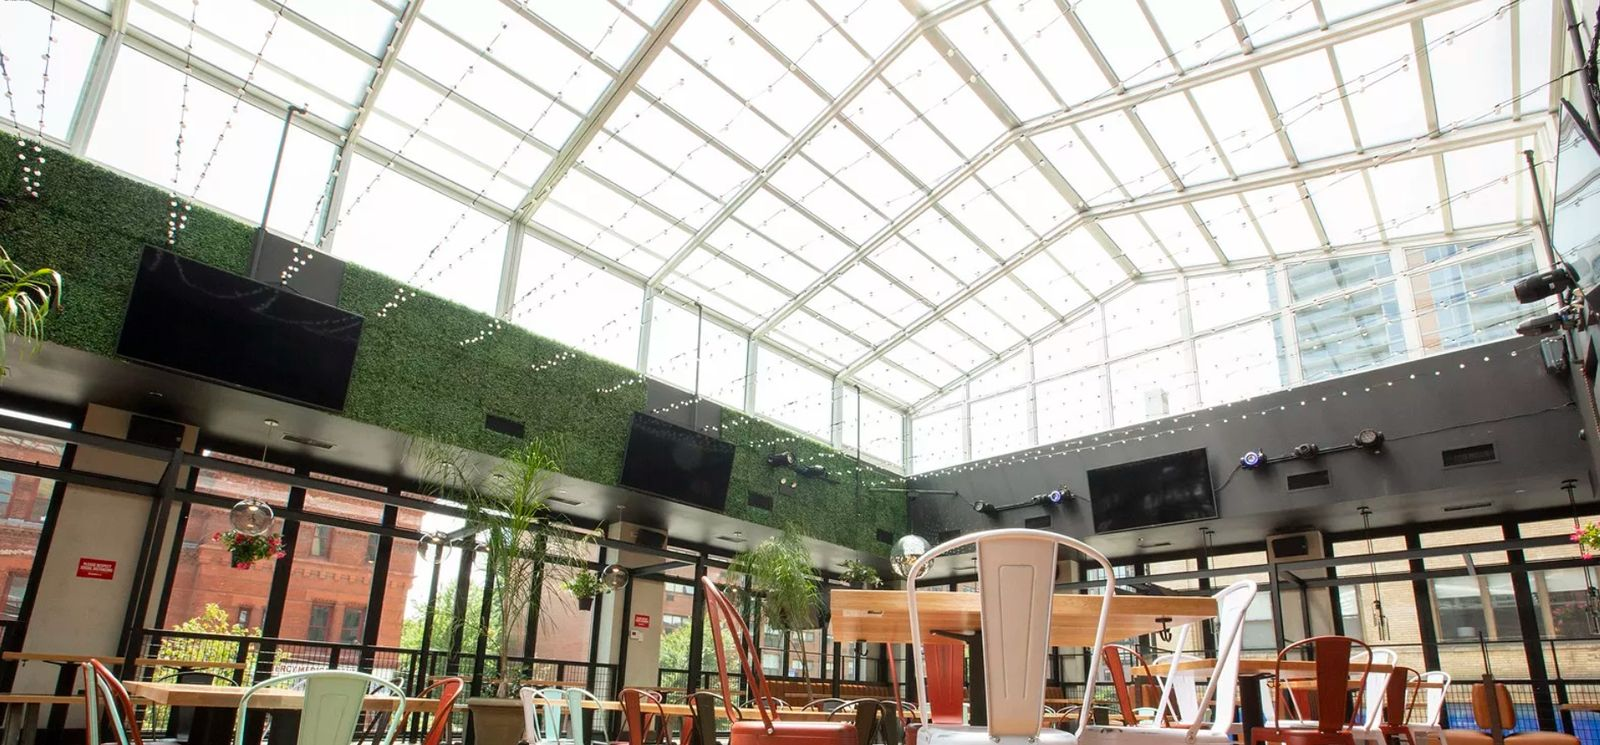 Restaurant Retractable Roofs Enhance Outdoor Patios